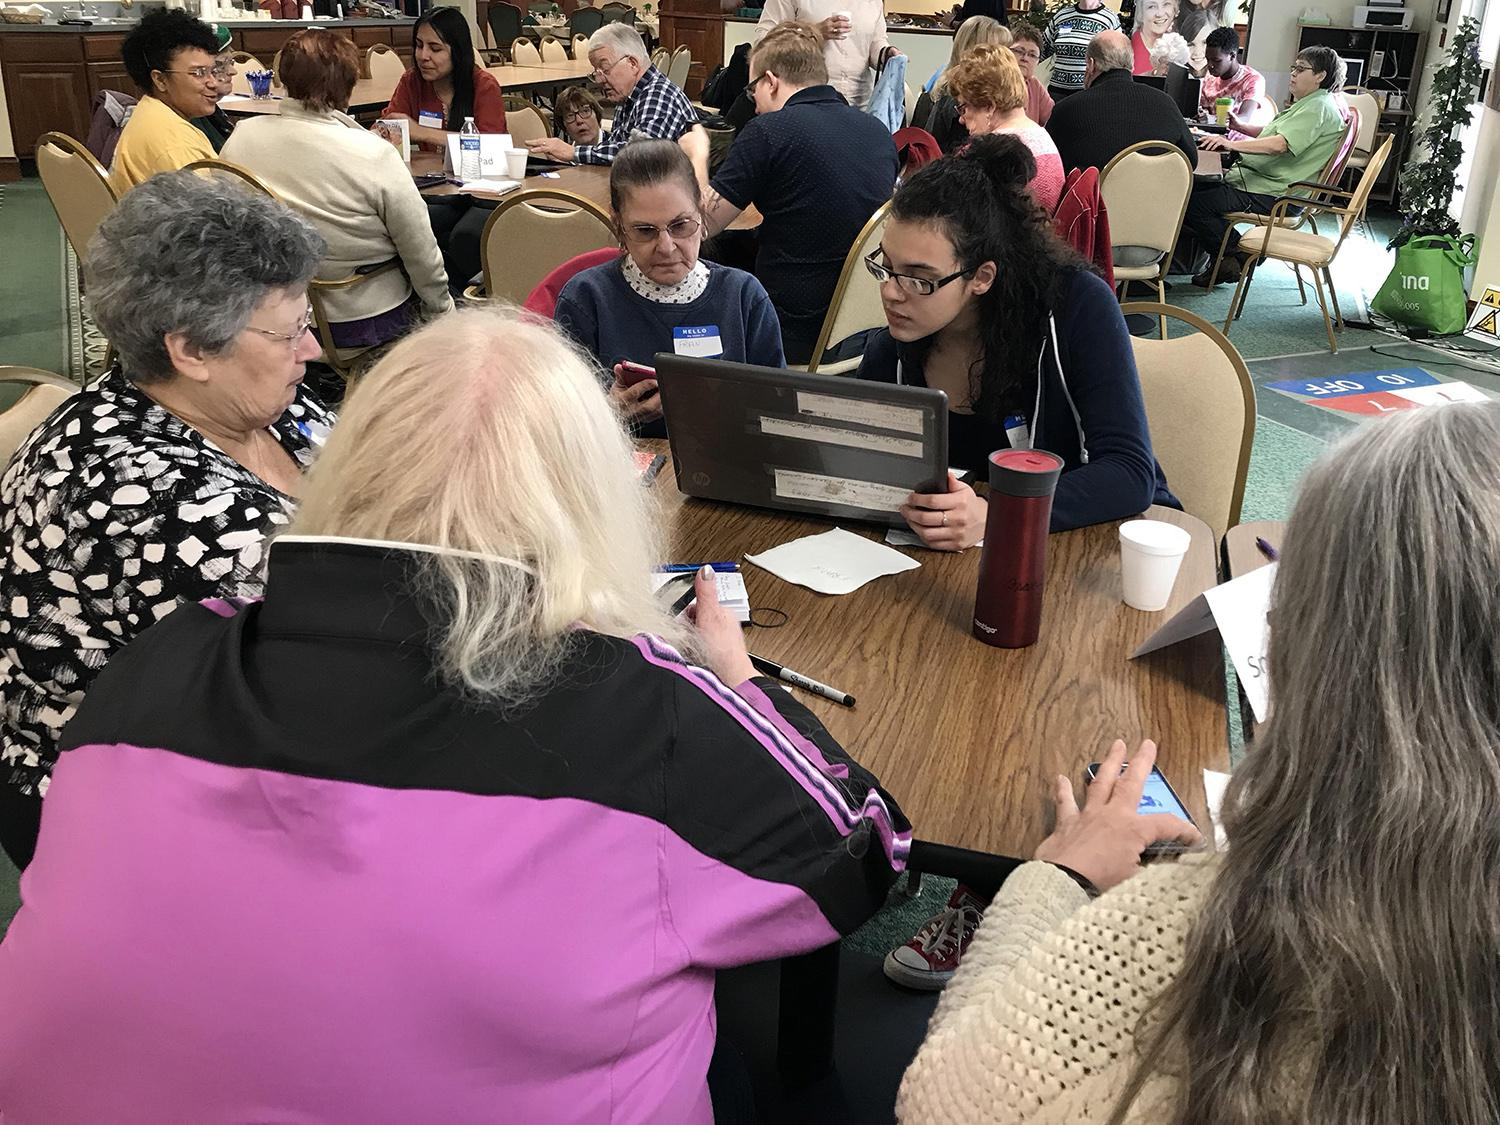 Students help senior citizens with technology questions